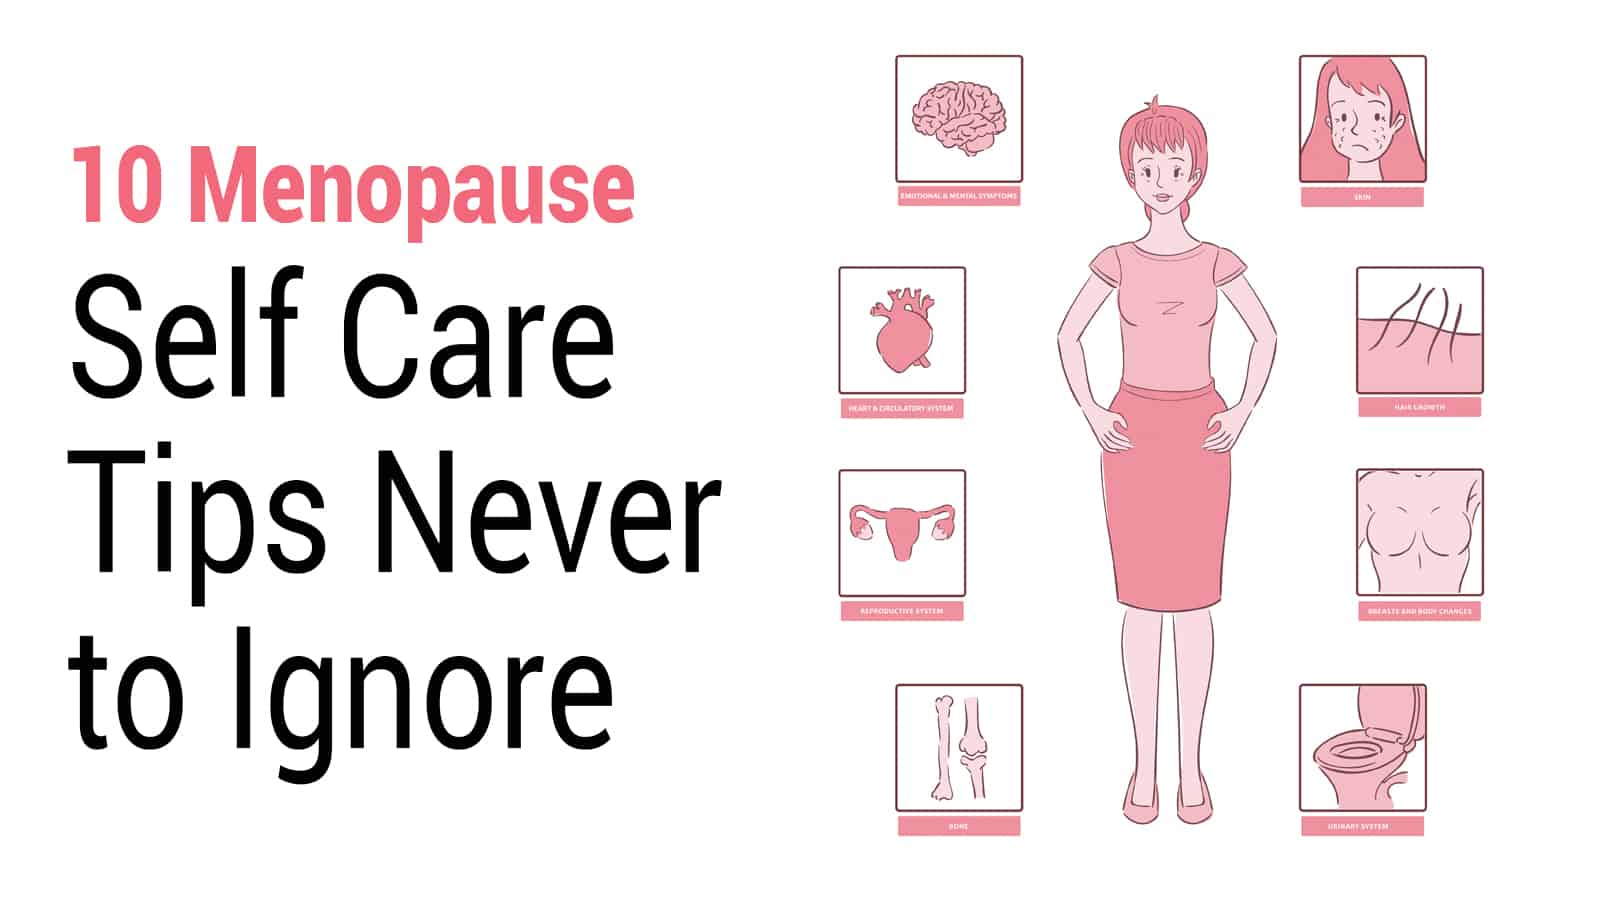 10 Menopause Self Care Tips Never to Ignore